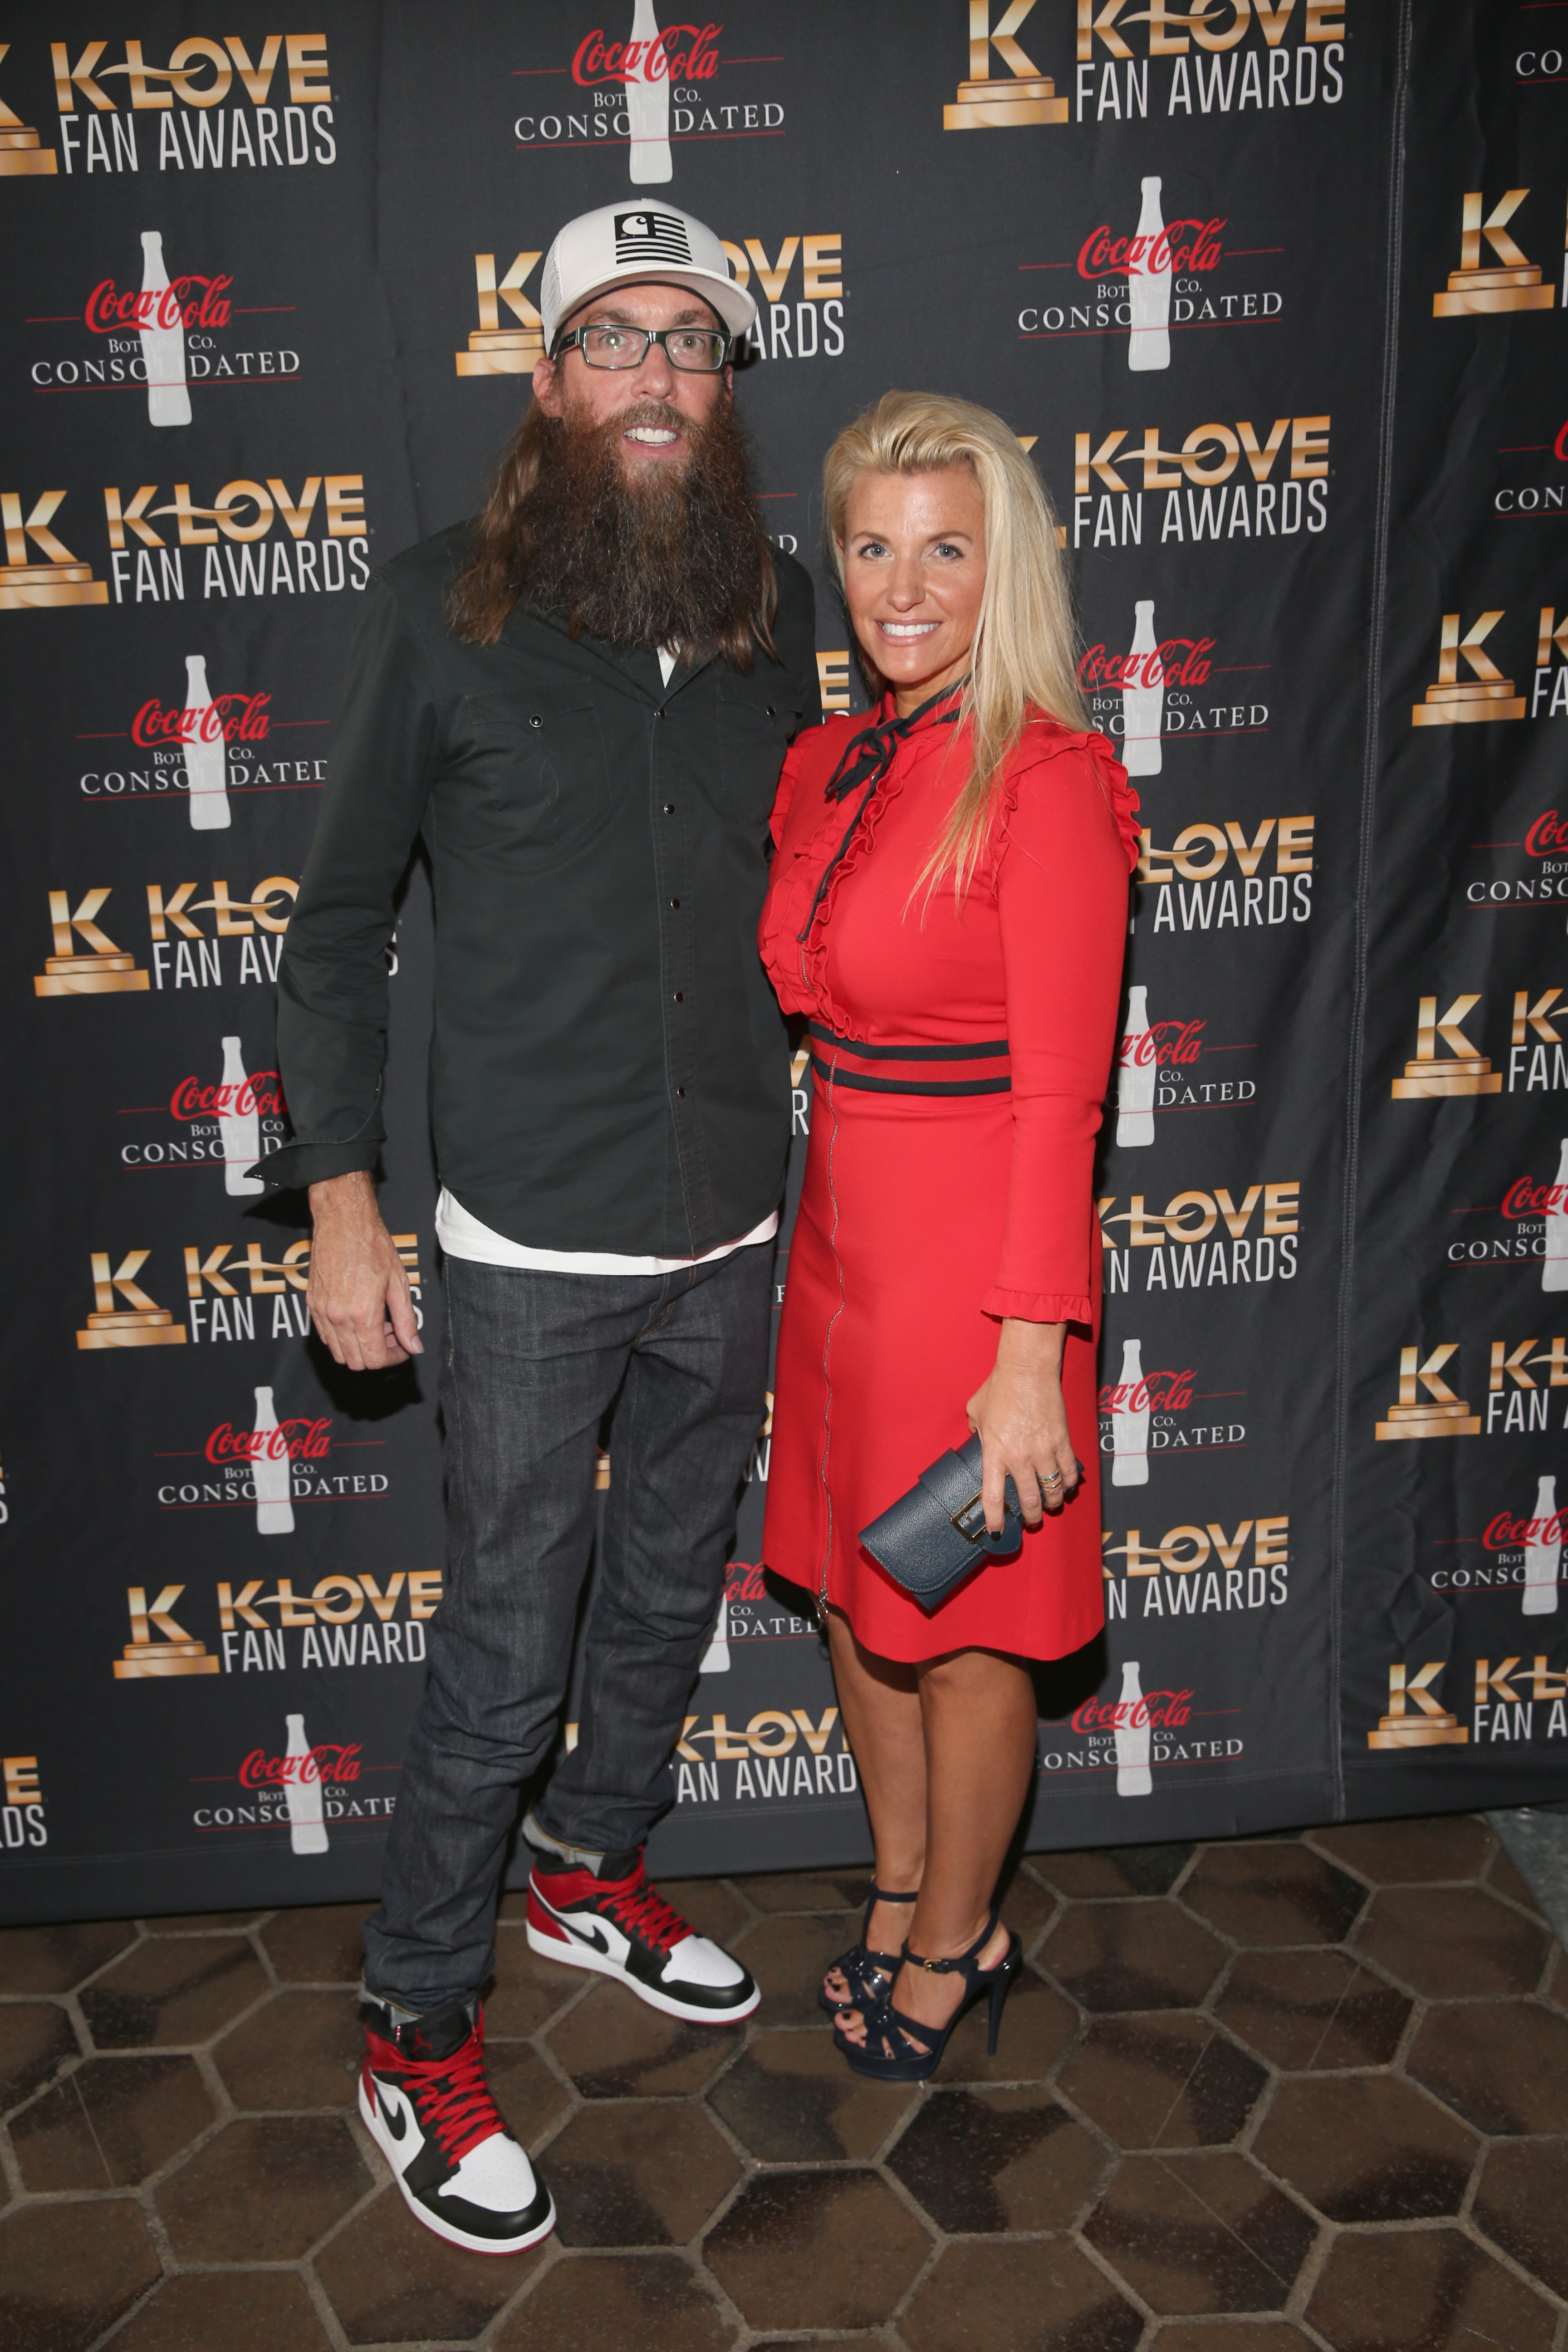 NASHVILLE, TN - MAY 28: Crowder (L) arrives at the 5th Annual KLOVE Fan Awards at The Grand Ole Opry on May 28, 2017 in Nashville, Tennessee. (Photo by Terry Wyatt/Getty Images for KLOVE)